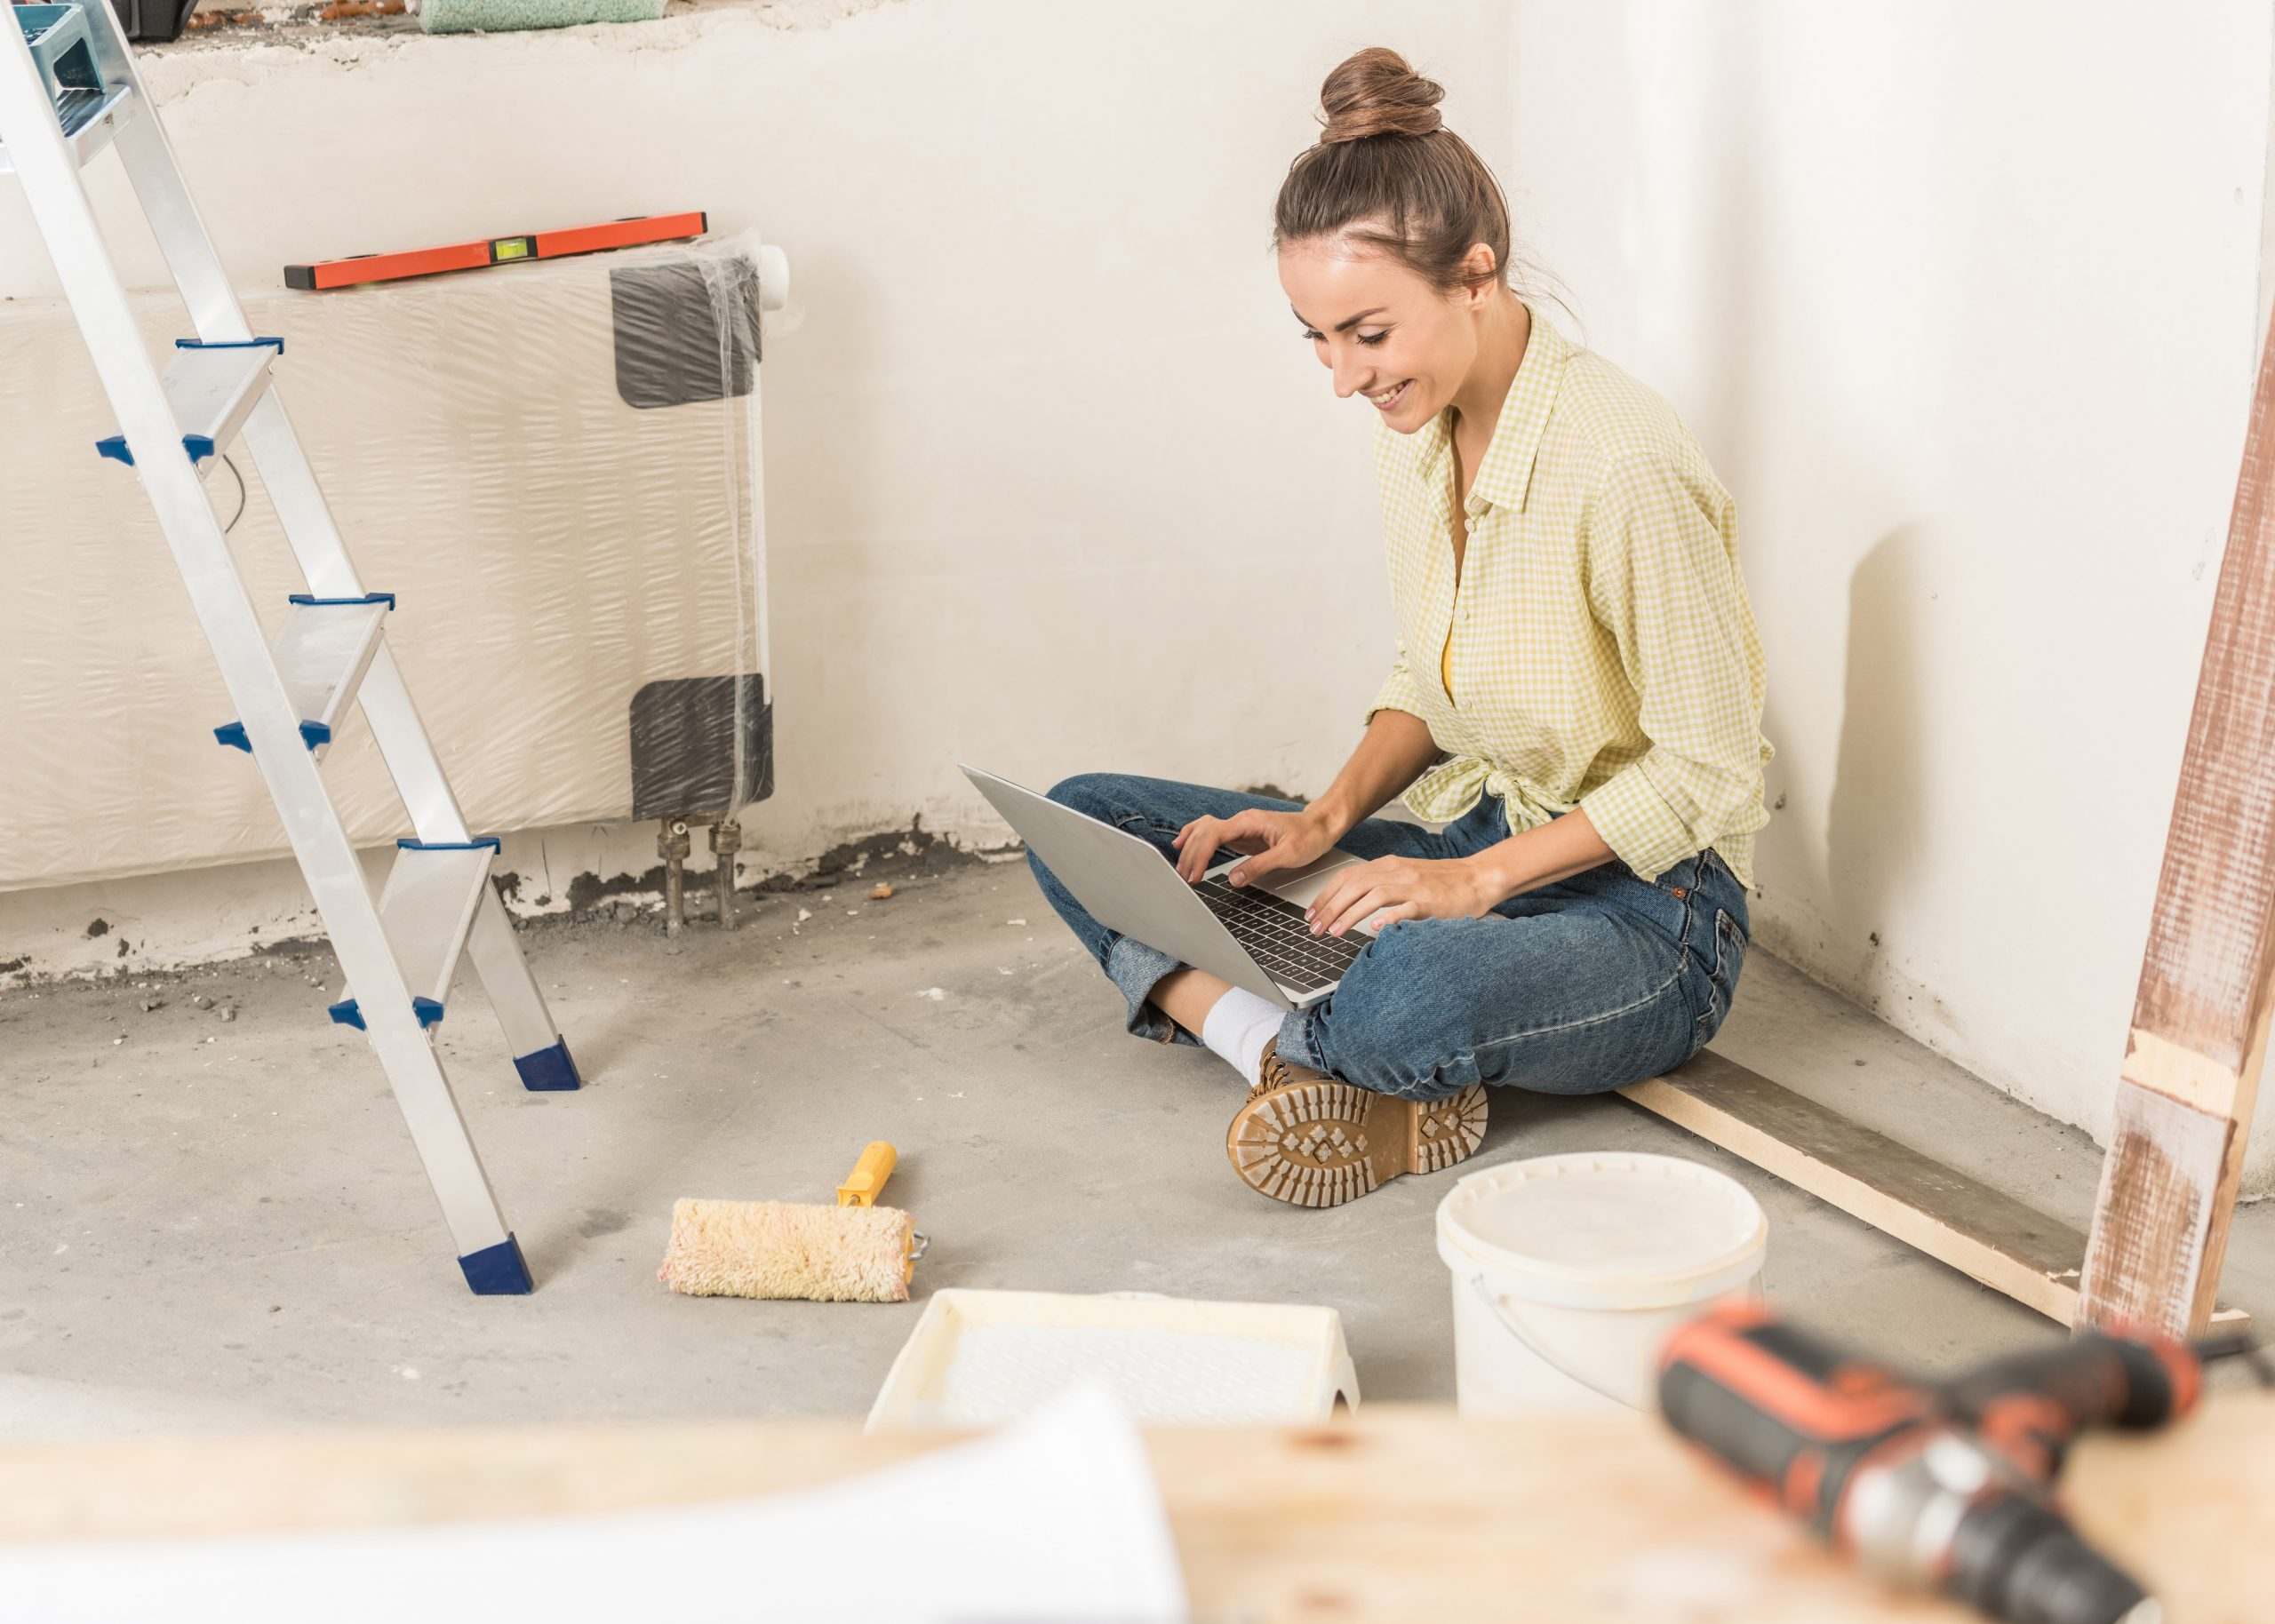 Young Caucasian woman sitting on the floor of a room being remodeled, using a laptop.